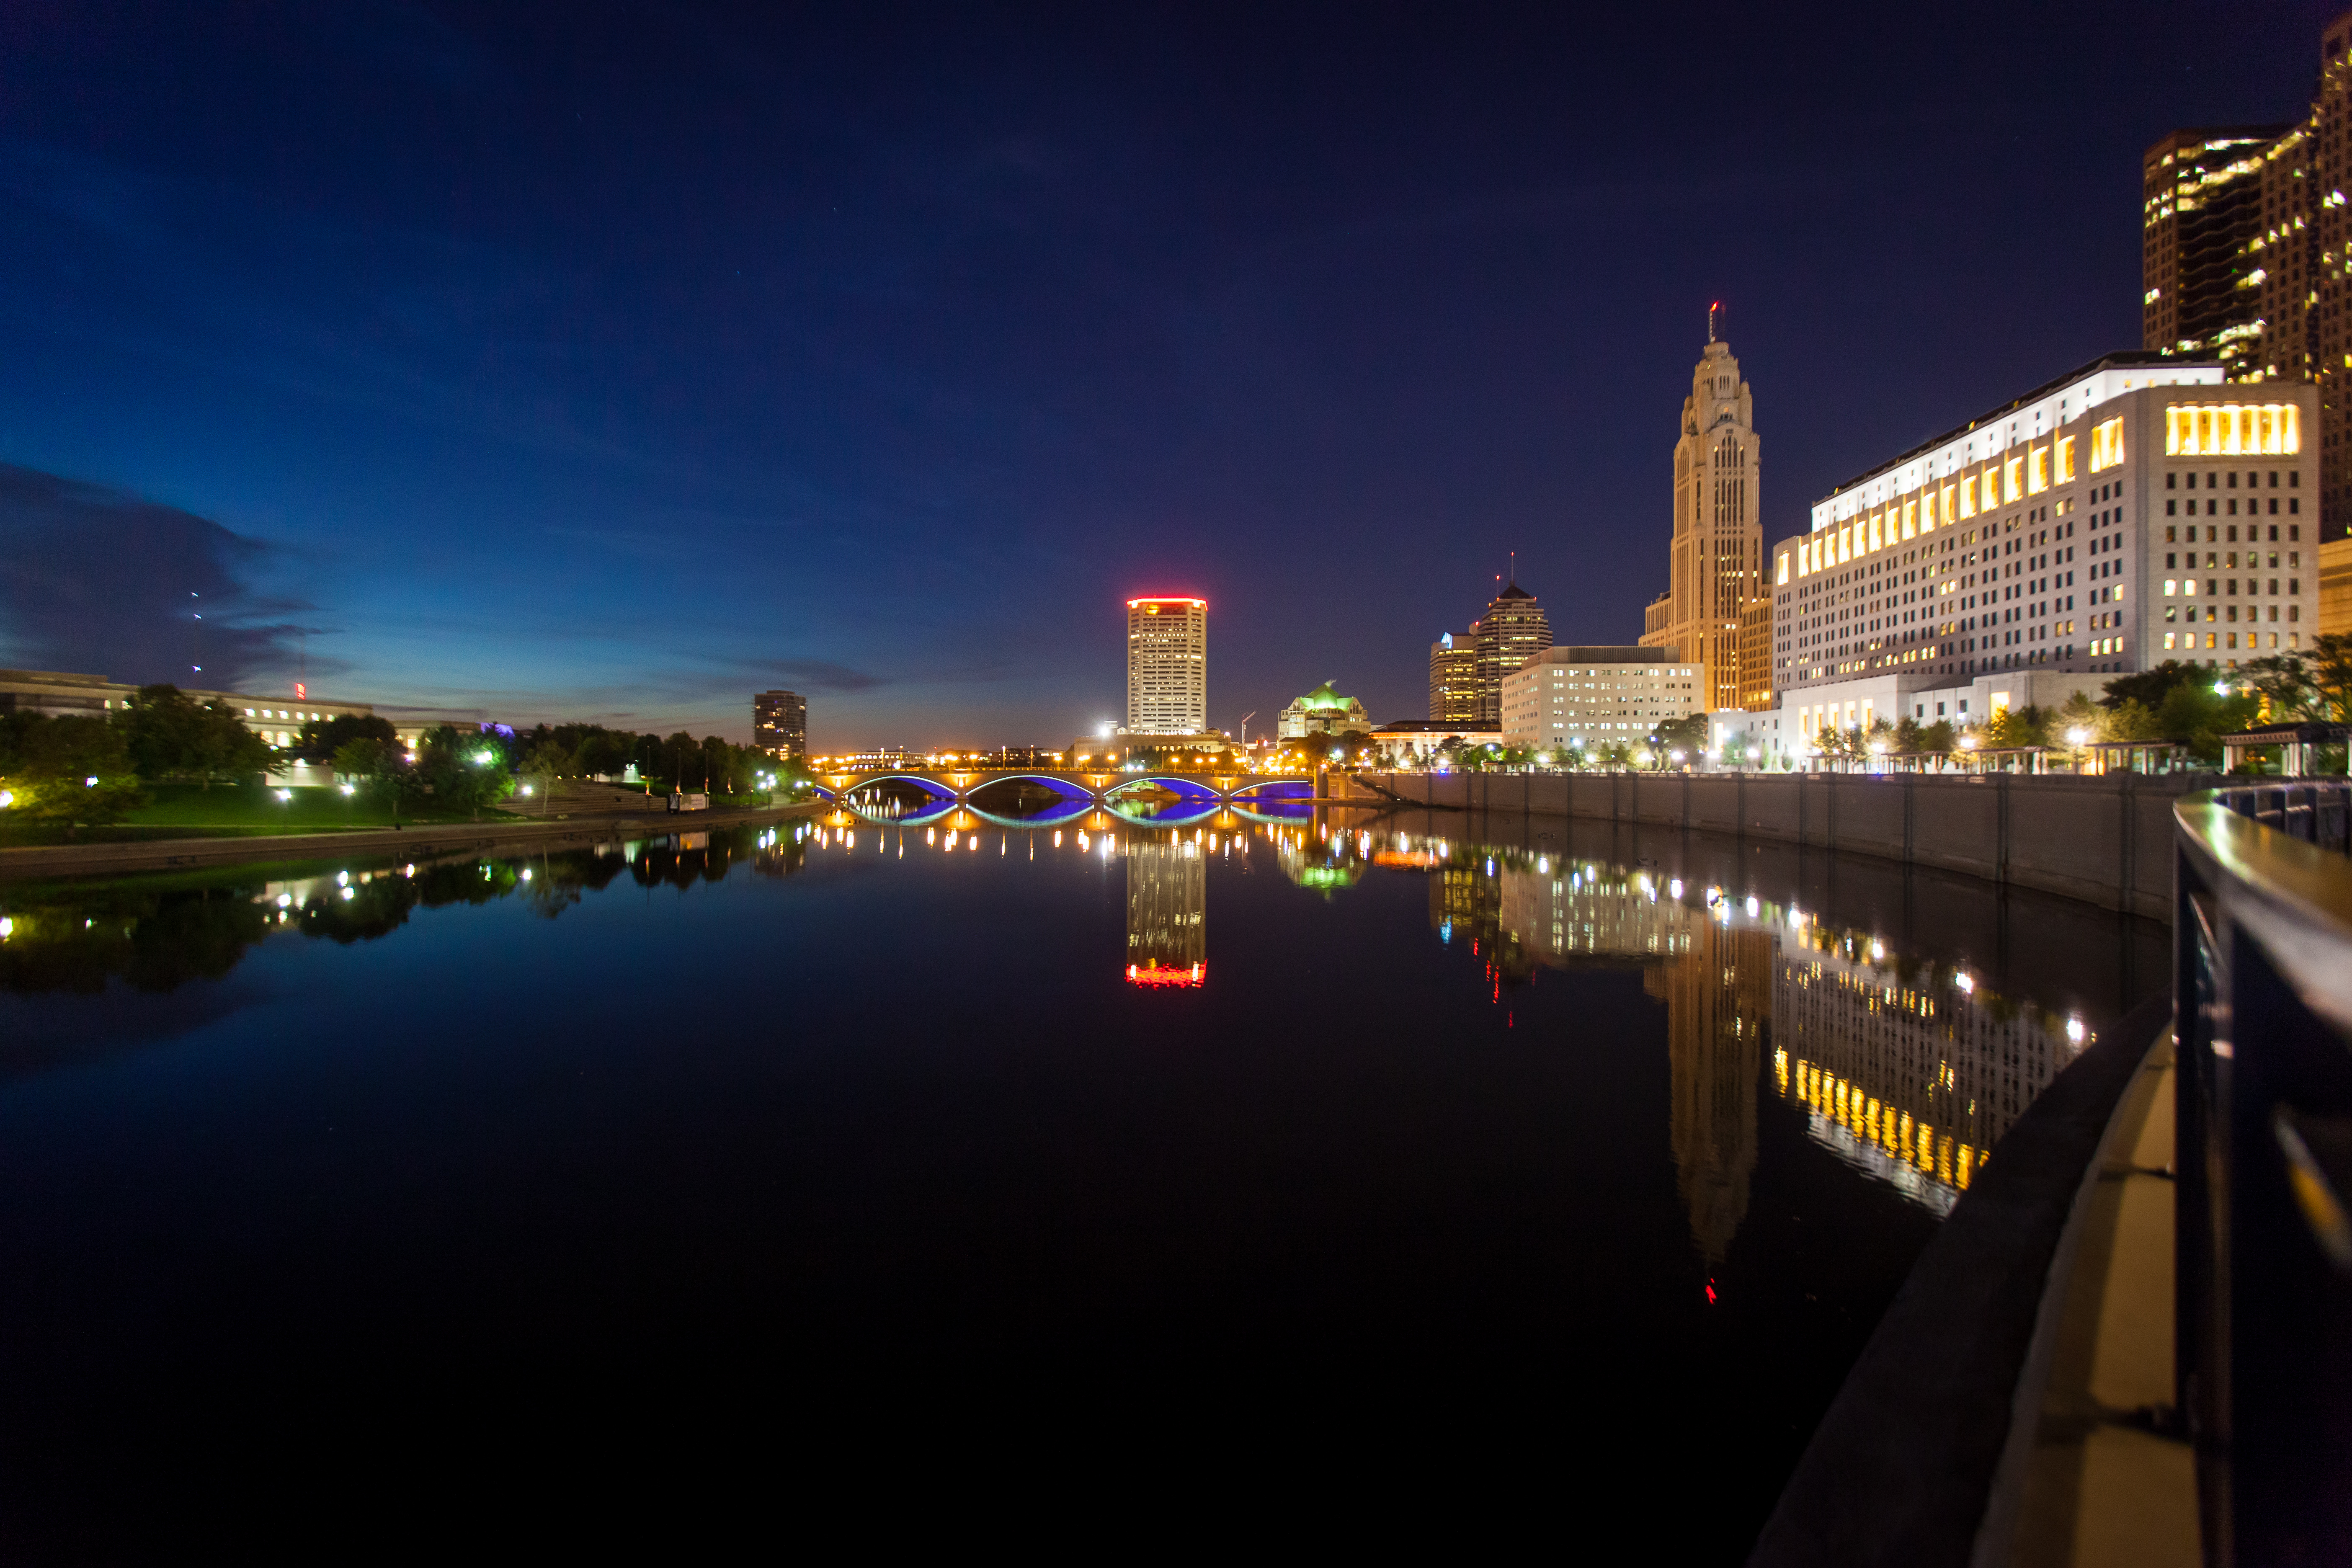 Columbus Riverfront at Dusk